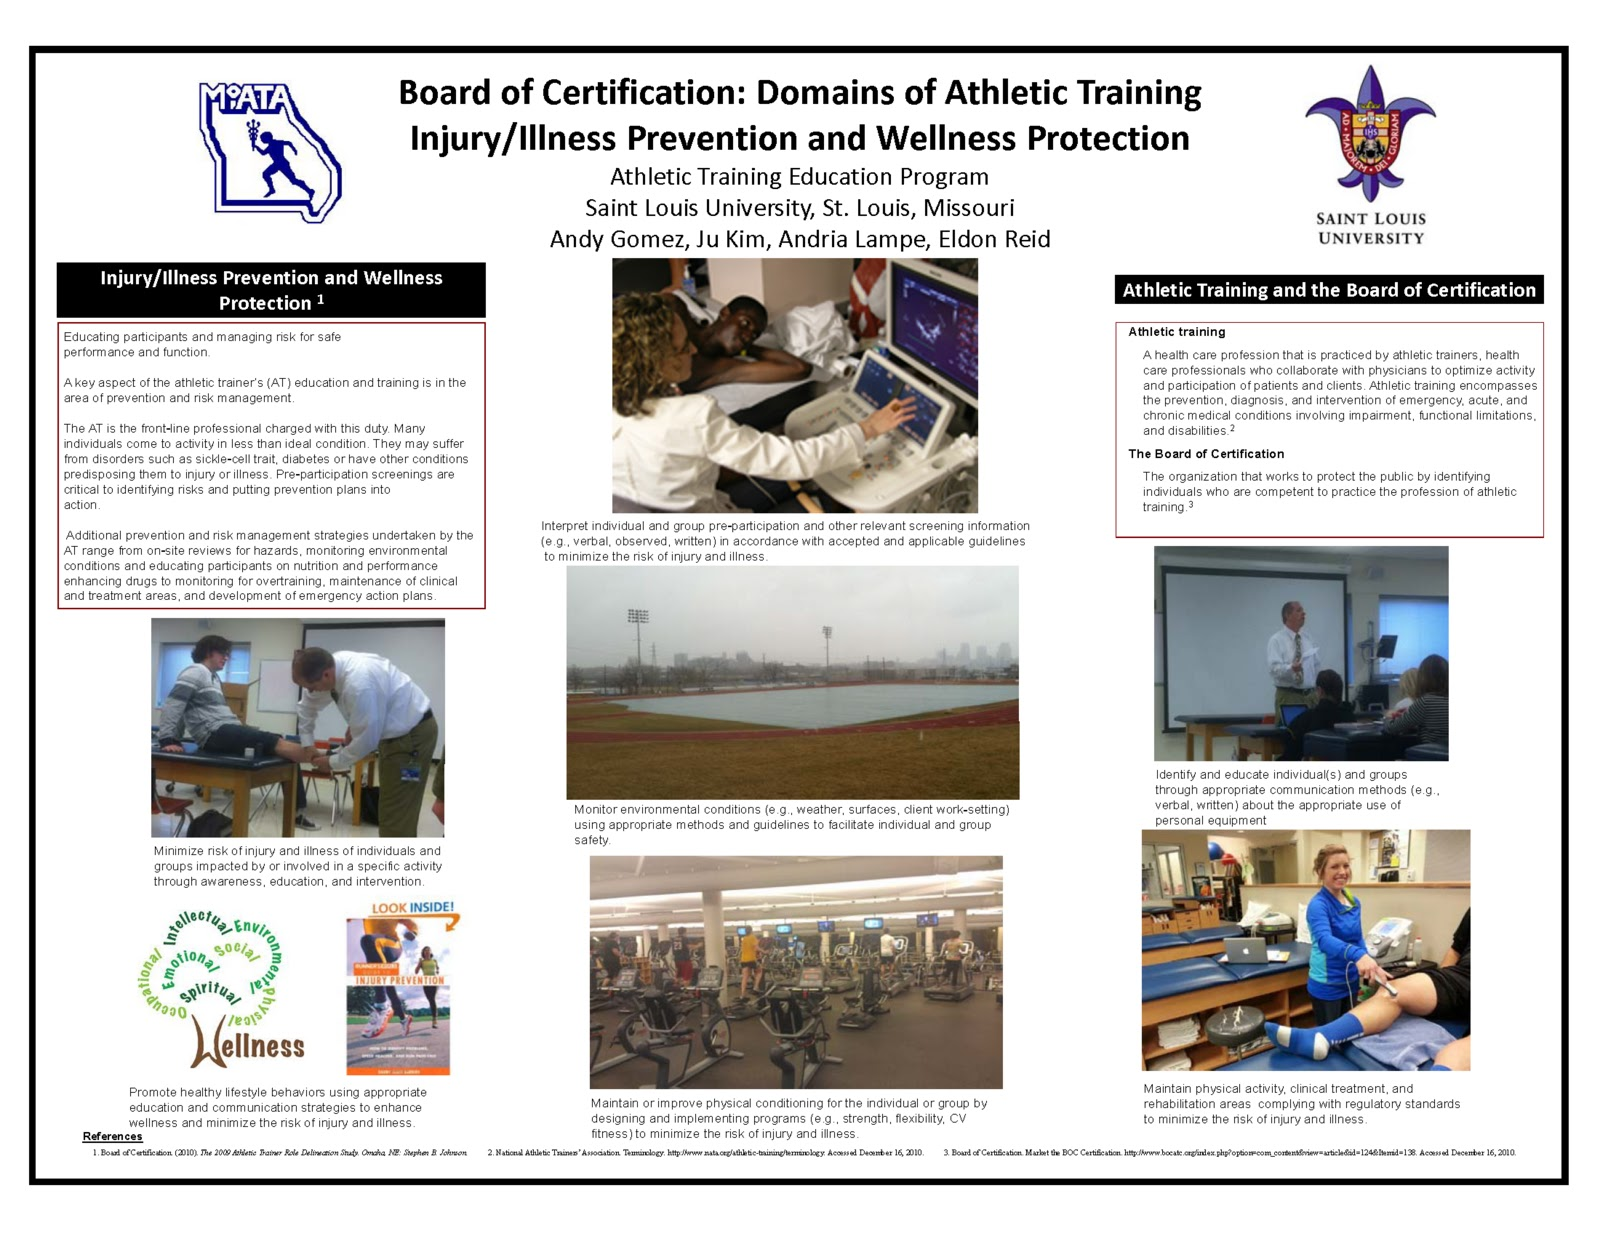 Saint louis university athletic training program march 2013 march 12 2013 1betcityfo Choice Image